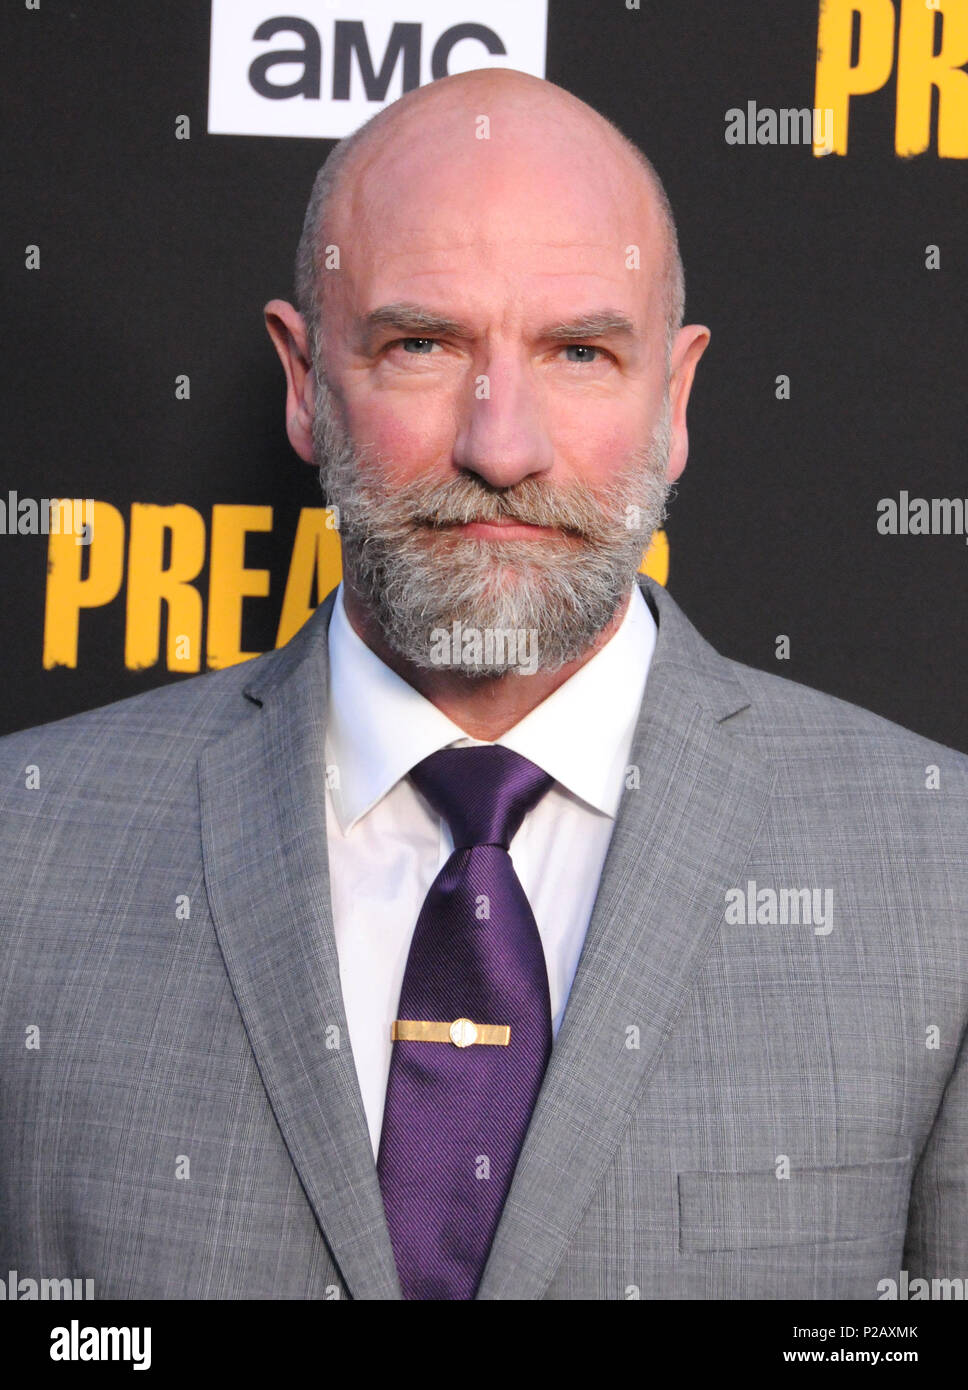 LOS ANGELES, CA - JUNE 14: Actor Graham McTavish attends AMC's 'Preacher' Season 3 Premiere Party on June 14, 2018 at The Hearth and Hound in Los Angeles, California. Photo by Barry King/Alamy Live News - Stock Image